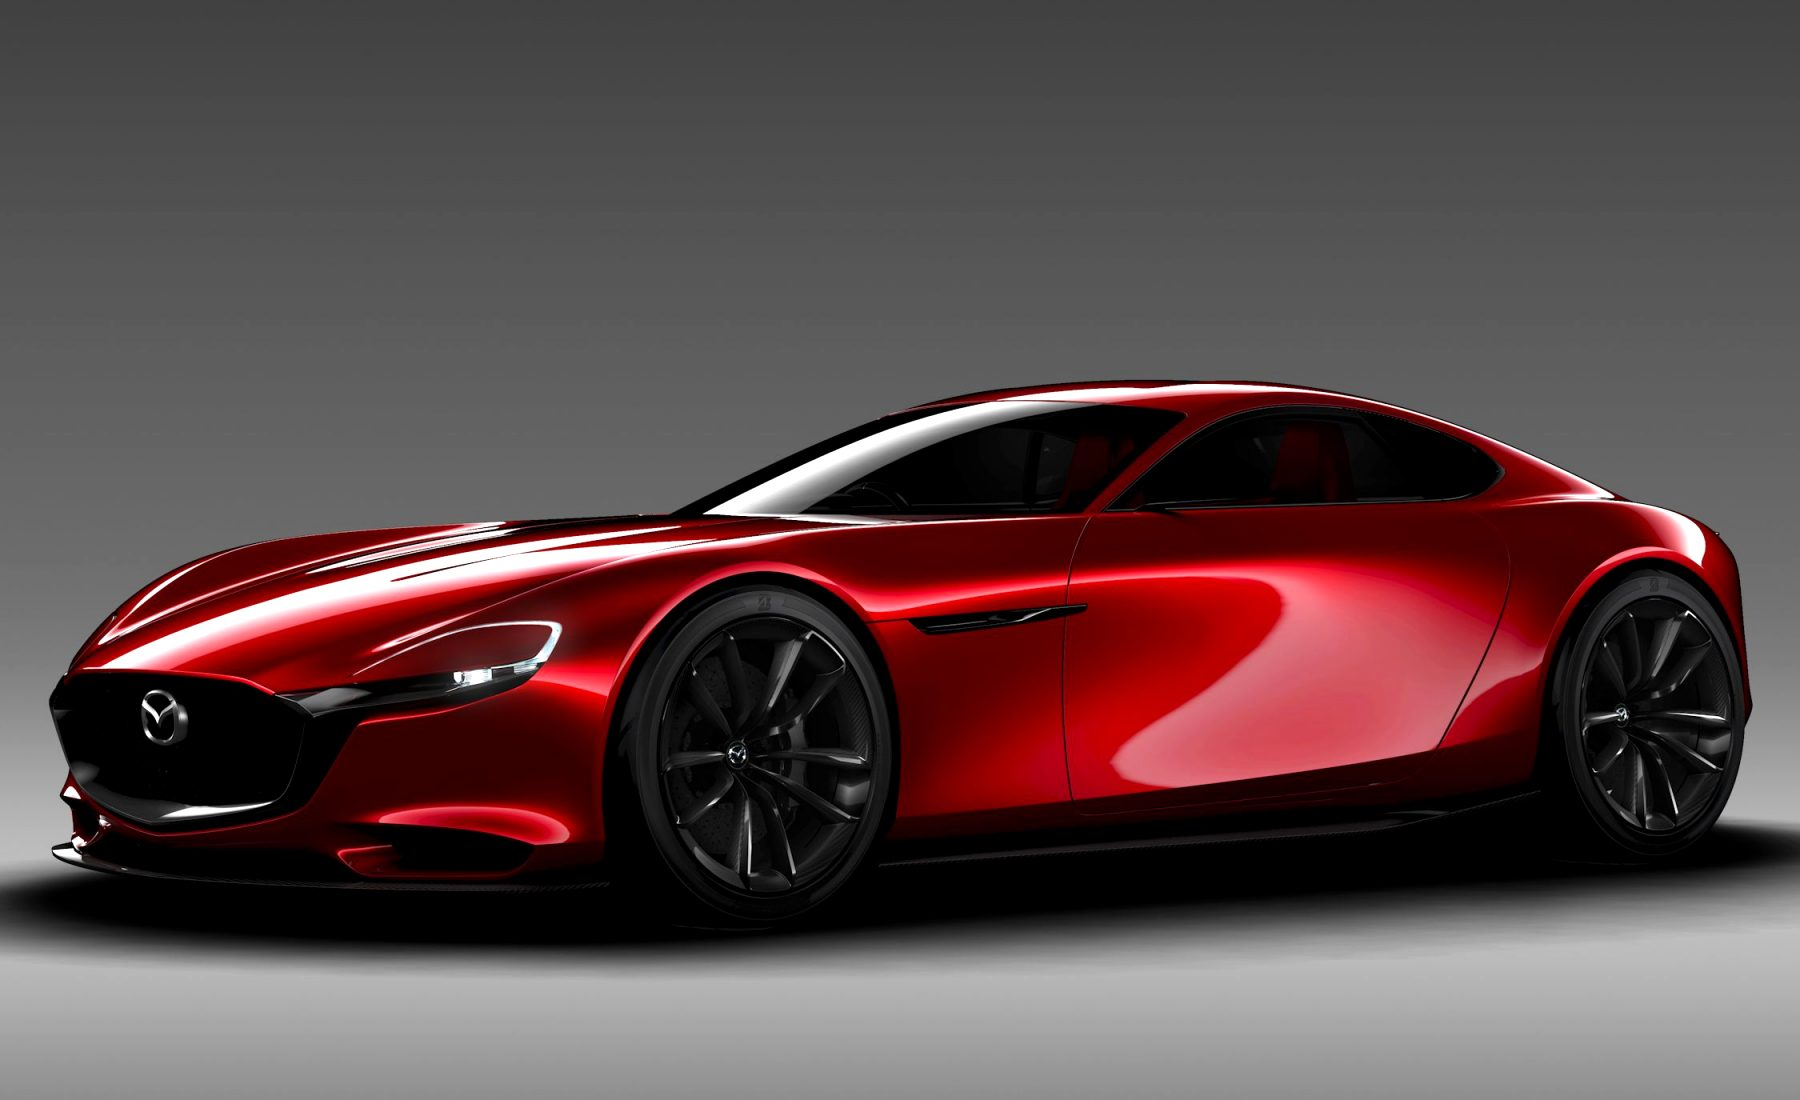 mazda rotary 2021 Price and Review